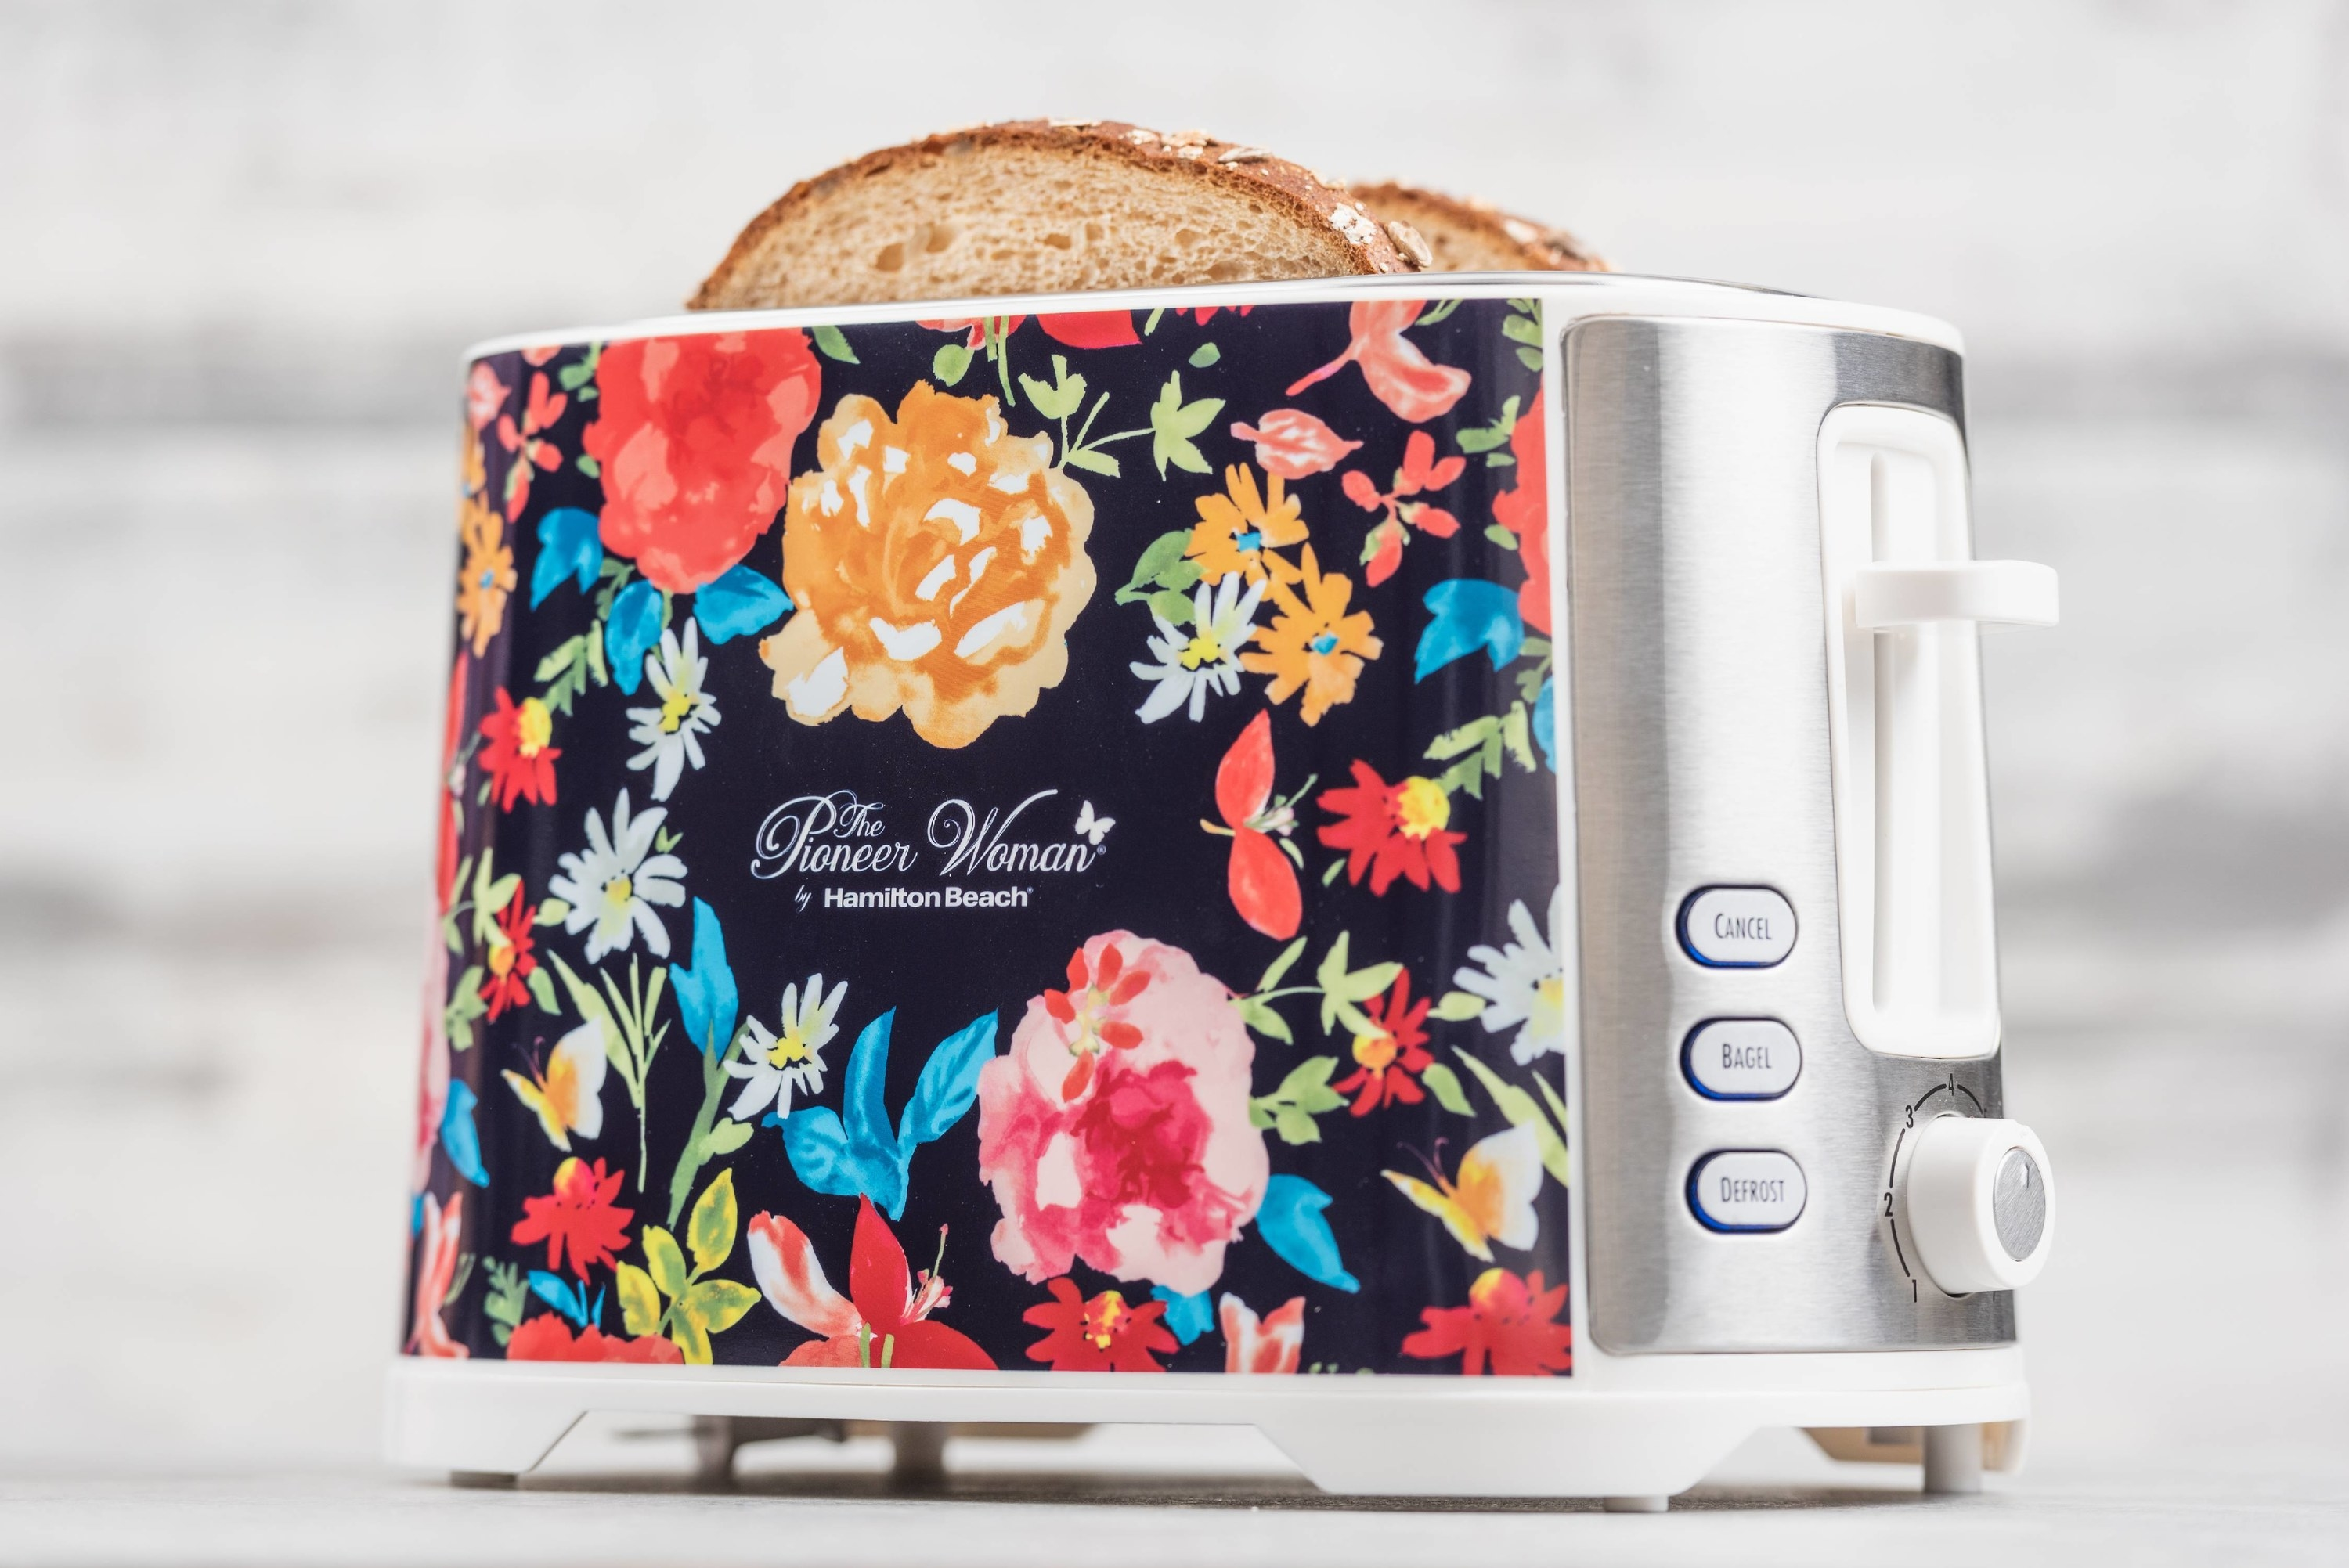 The floral toaster